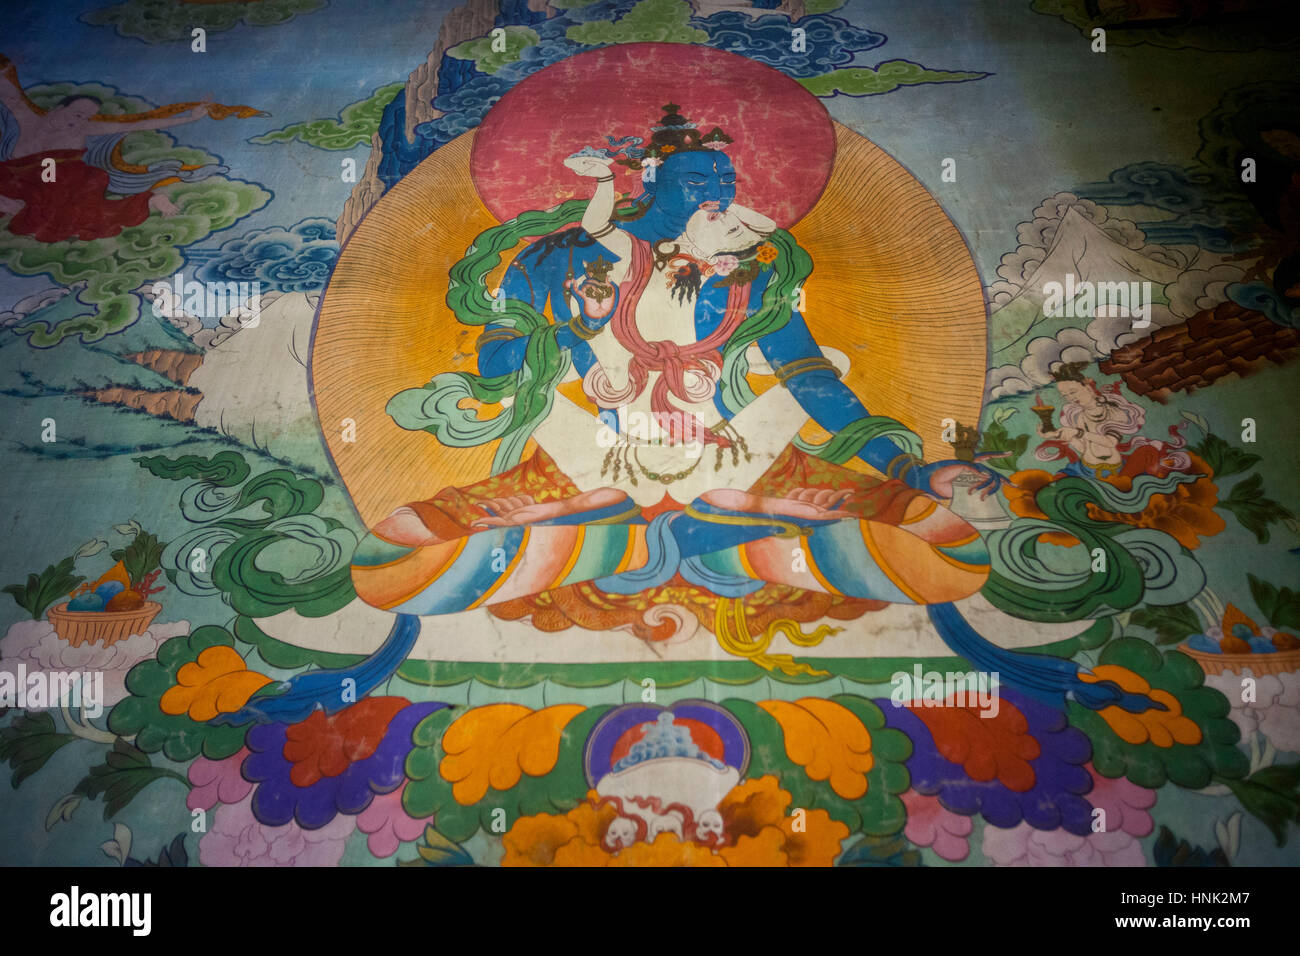 Paintings inside Tagong Monastery in the Tibetan Plateau region in Sichuan, China. - Stock Image